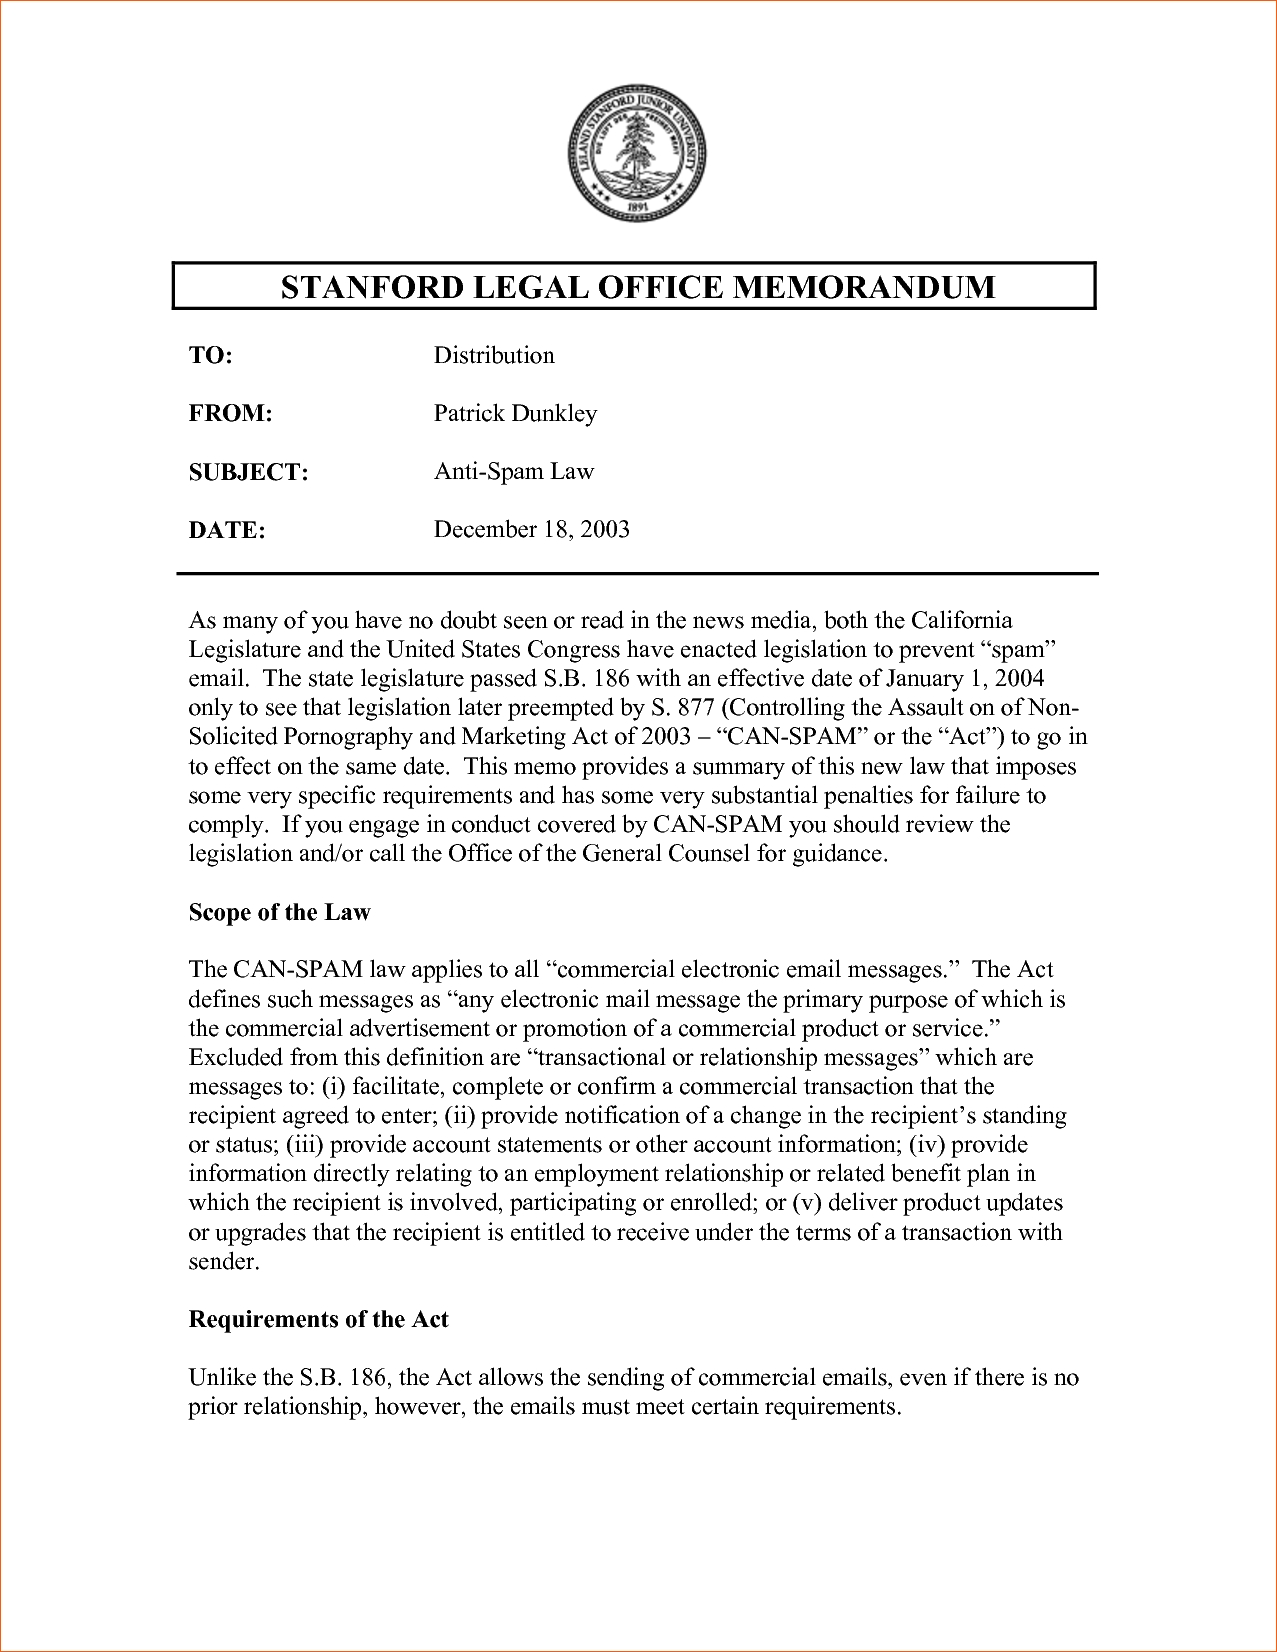 Sample Legal Memo Template - Dimonit.tk with regard to Legal Office Memo Format 22945